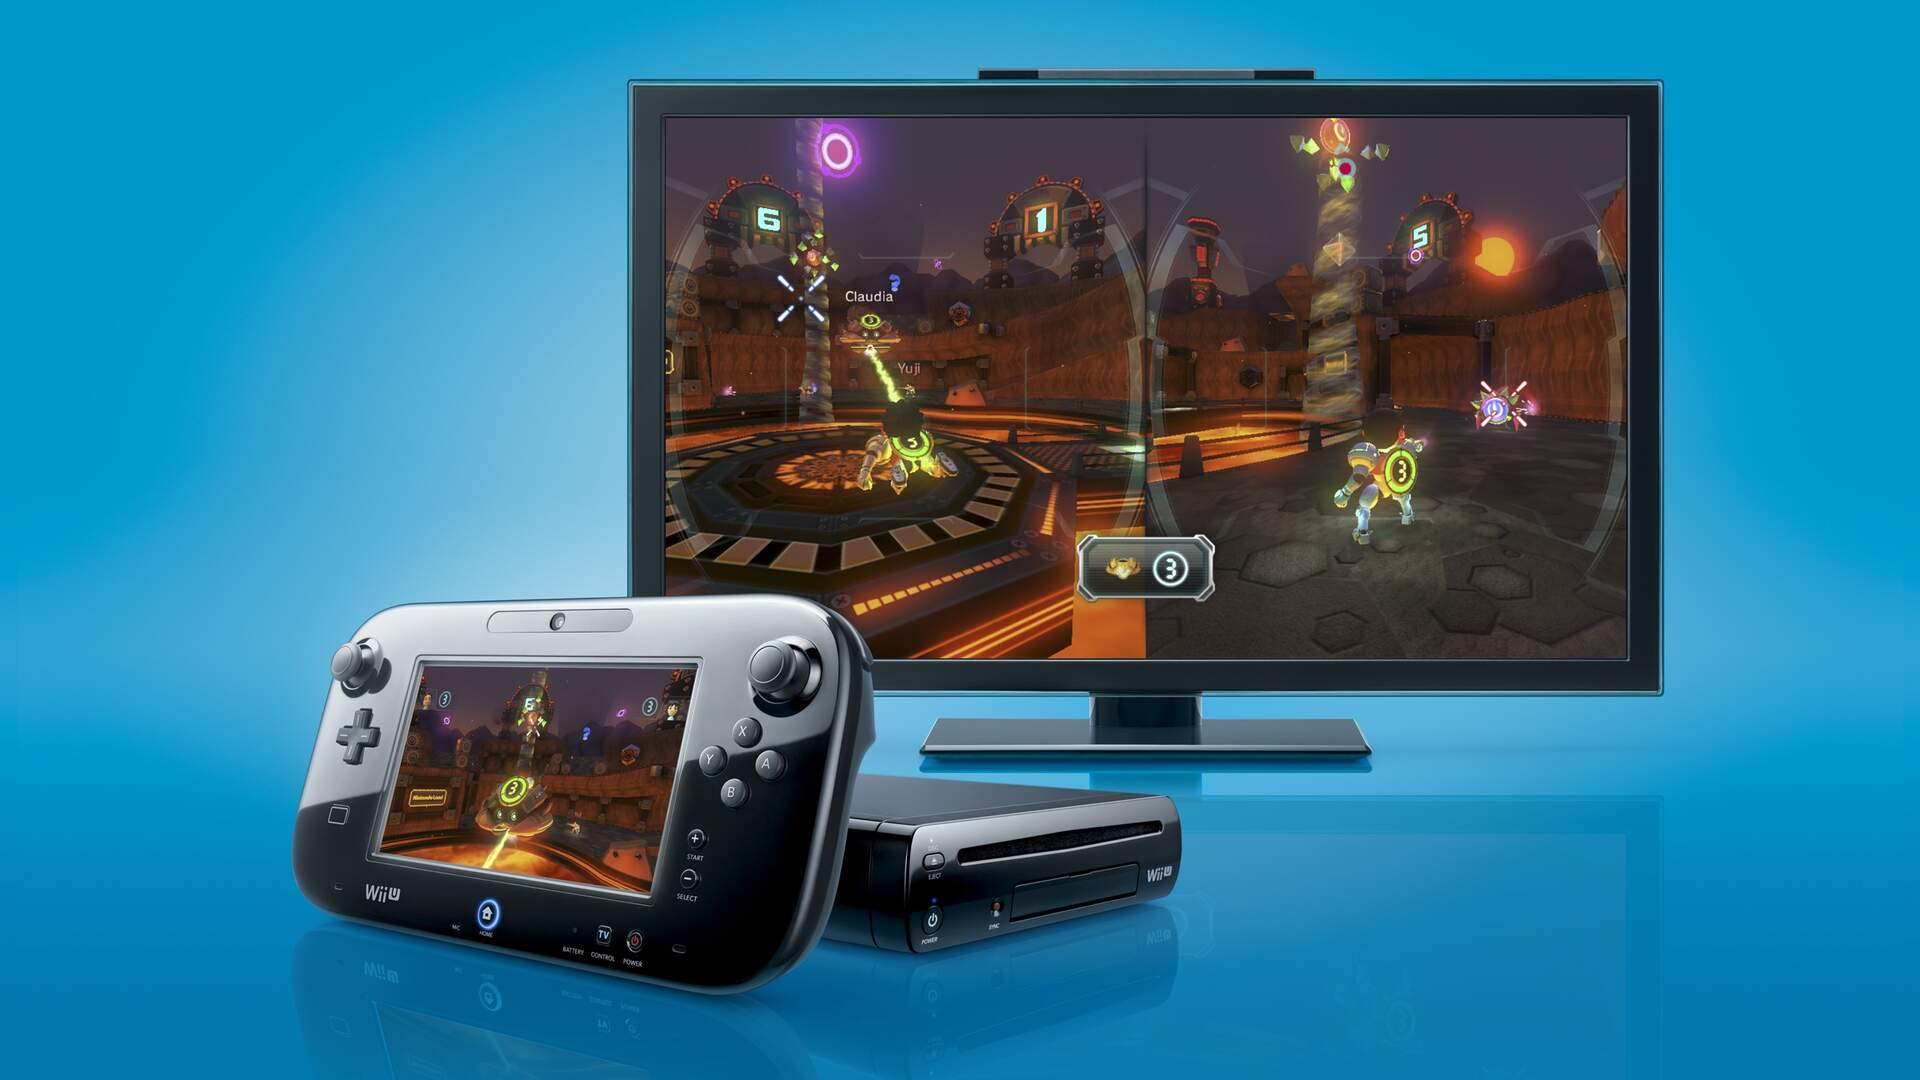 Who's to Blame for Wii U's Dismal Sales?